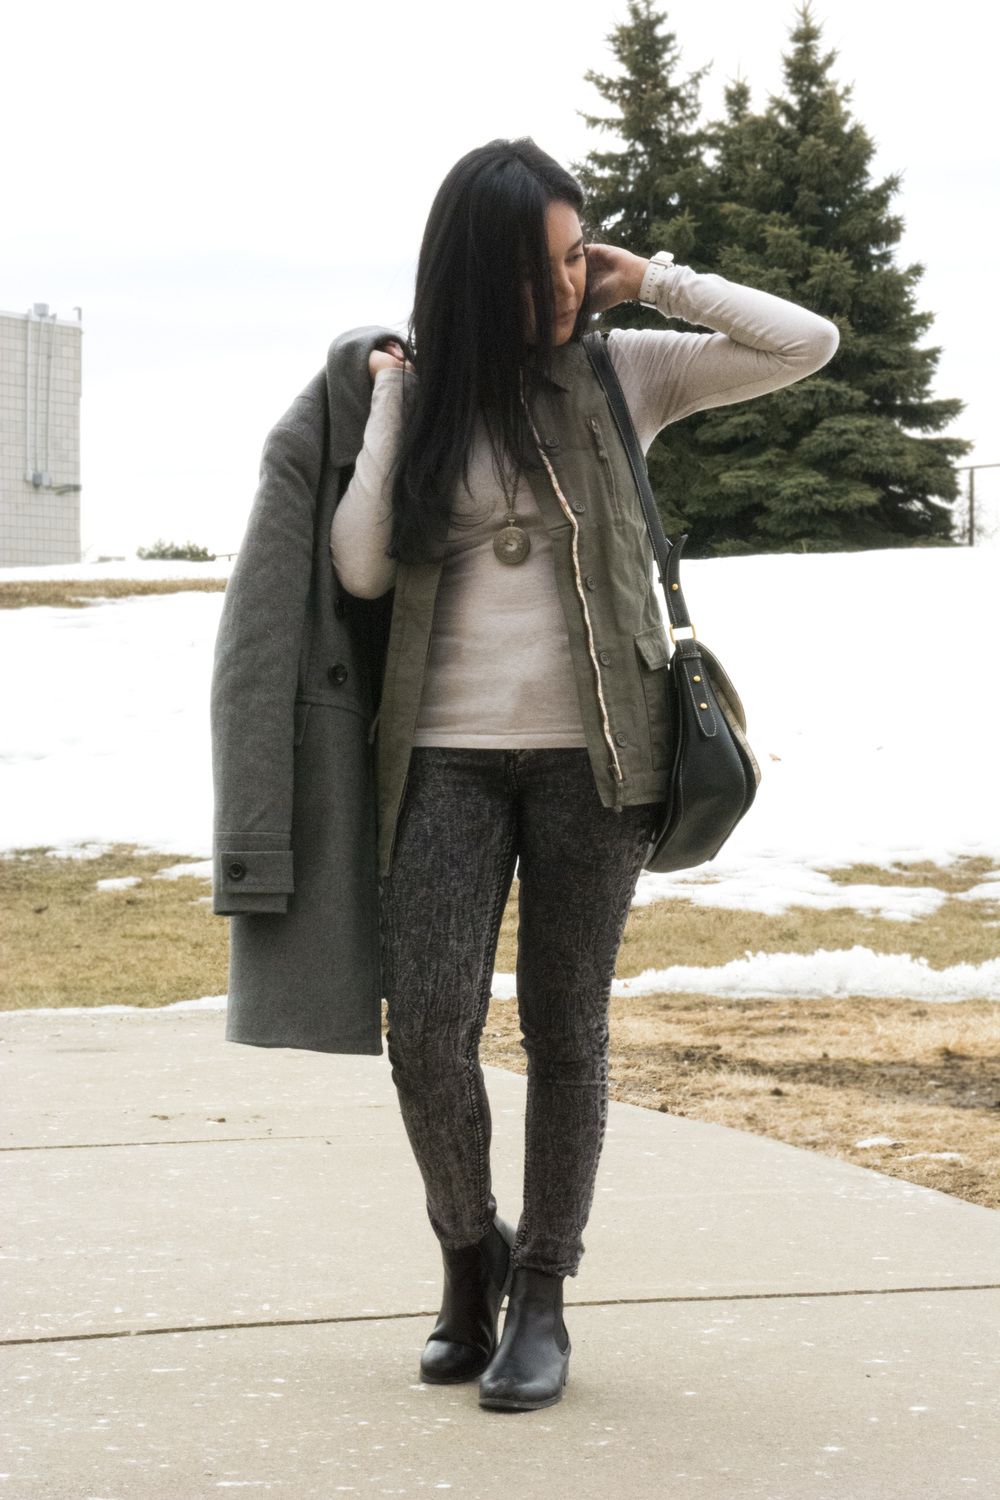 Josie Bako wearing anO'niell vest, Old Navy jacket, Forever 21 long sleeve shirt, H&M pants, Topshop ankle boots, thrifted necklace, and shoulder bag from Indonesia.